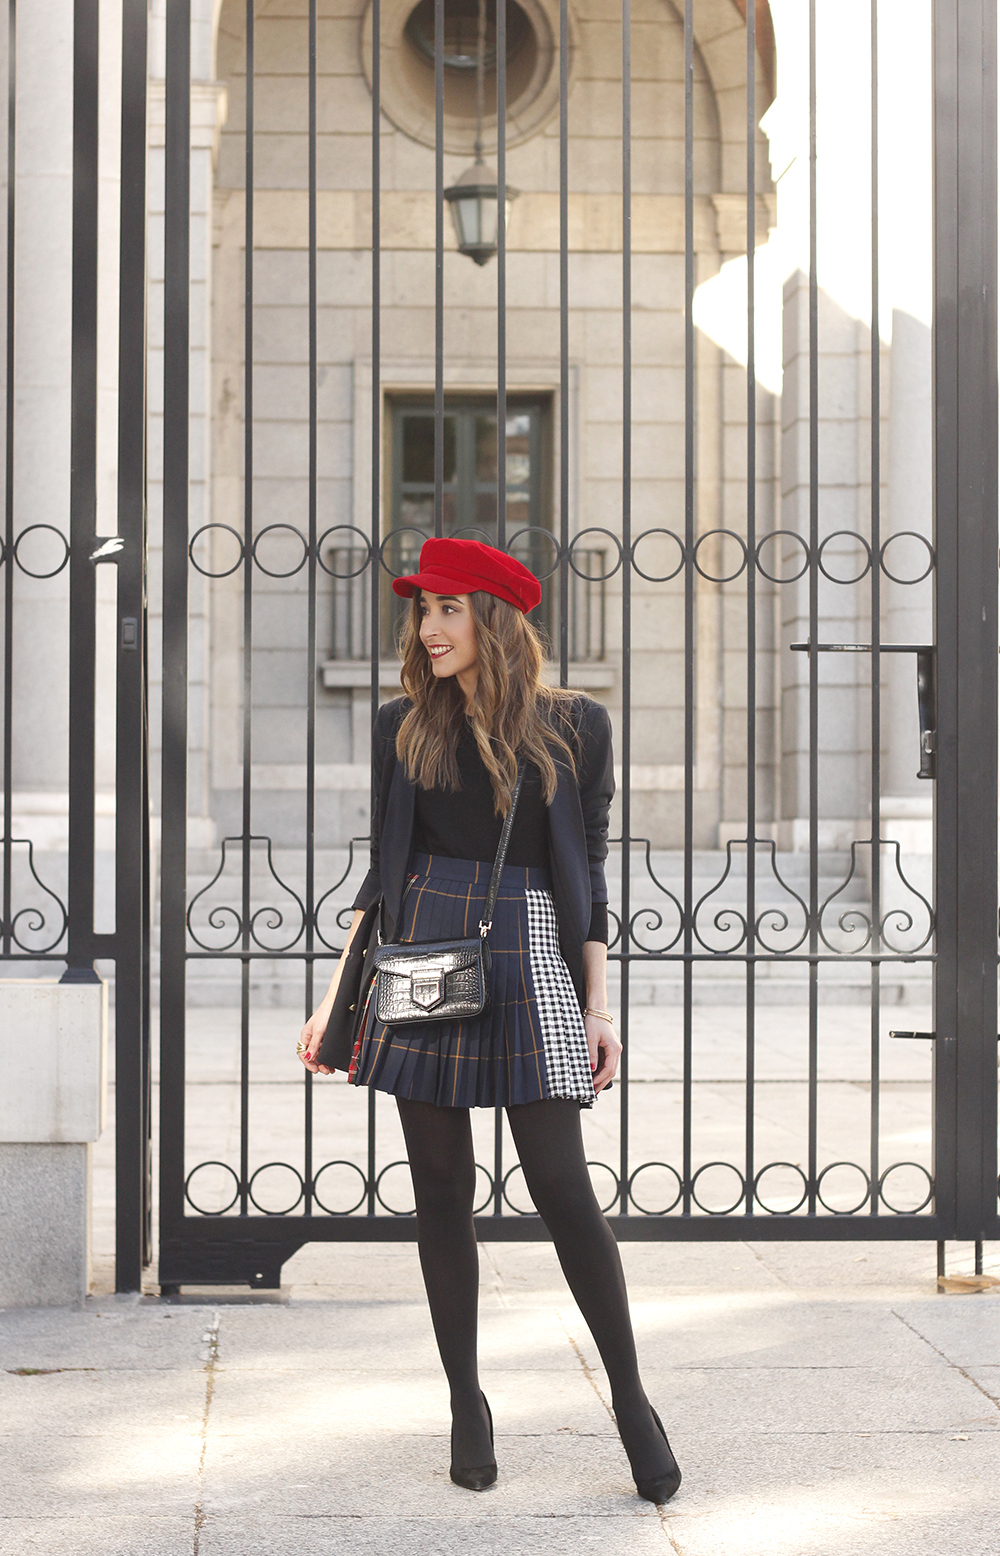 pleated skirt Scottish print Vichy print red navy cap givenchy bag winter outfit falda de tablas look invierno 201805